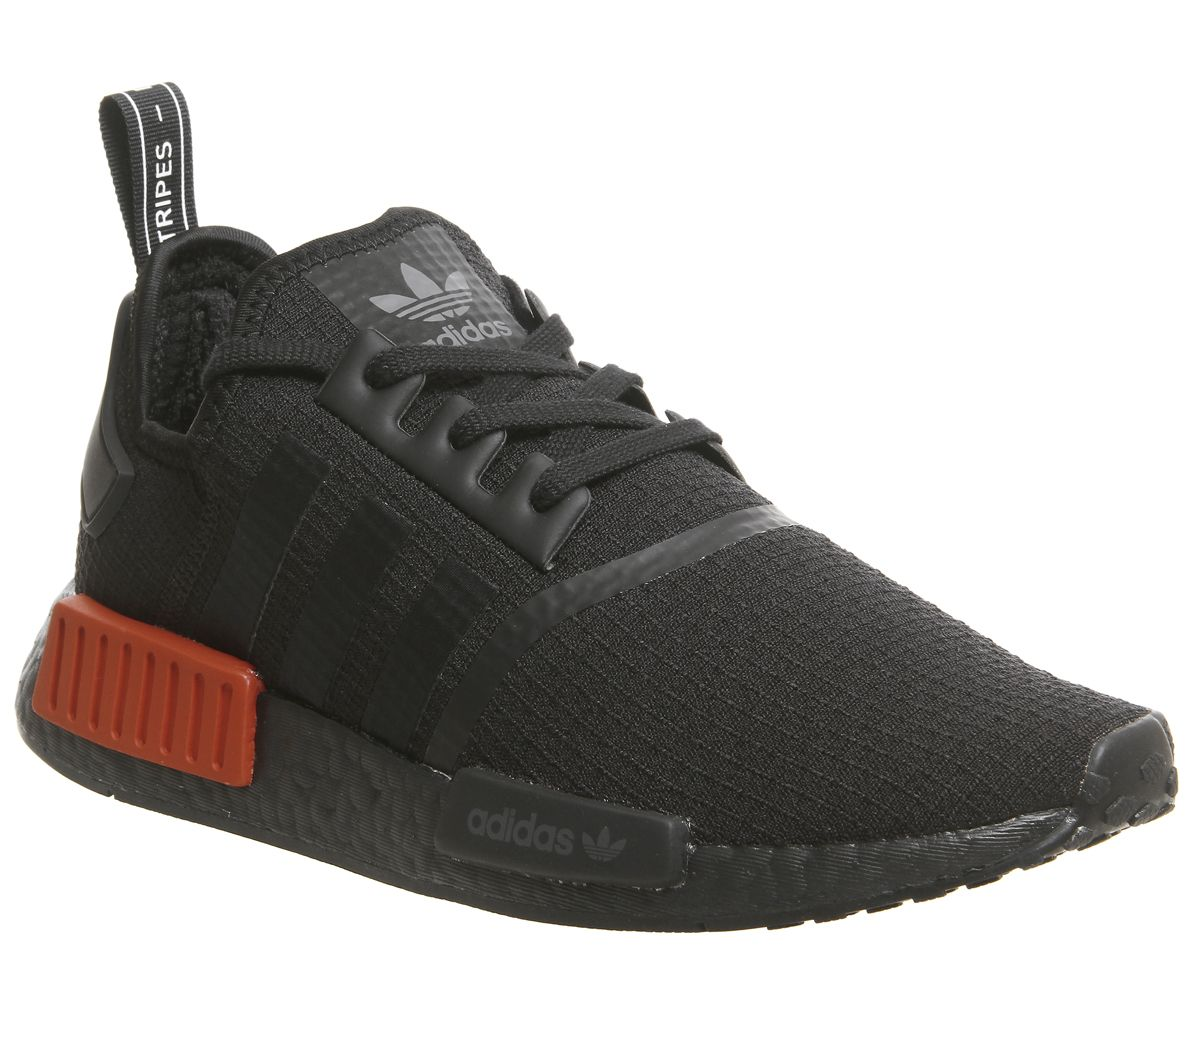 low priced d5af3 71eac adidas Nmd R1 Trainers Core Black Lush Red - His trainers